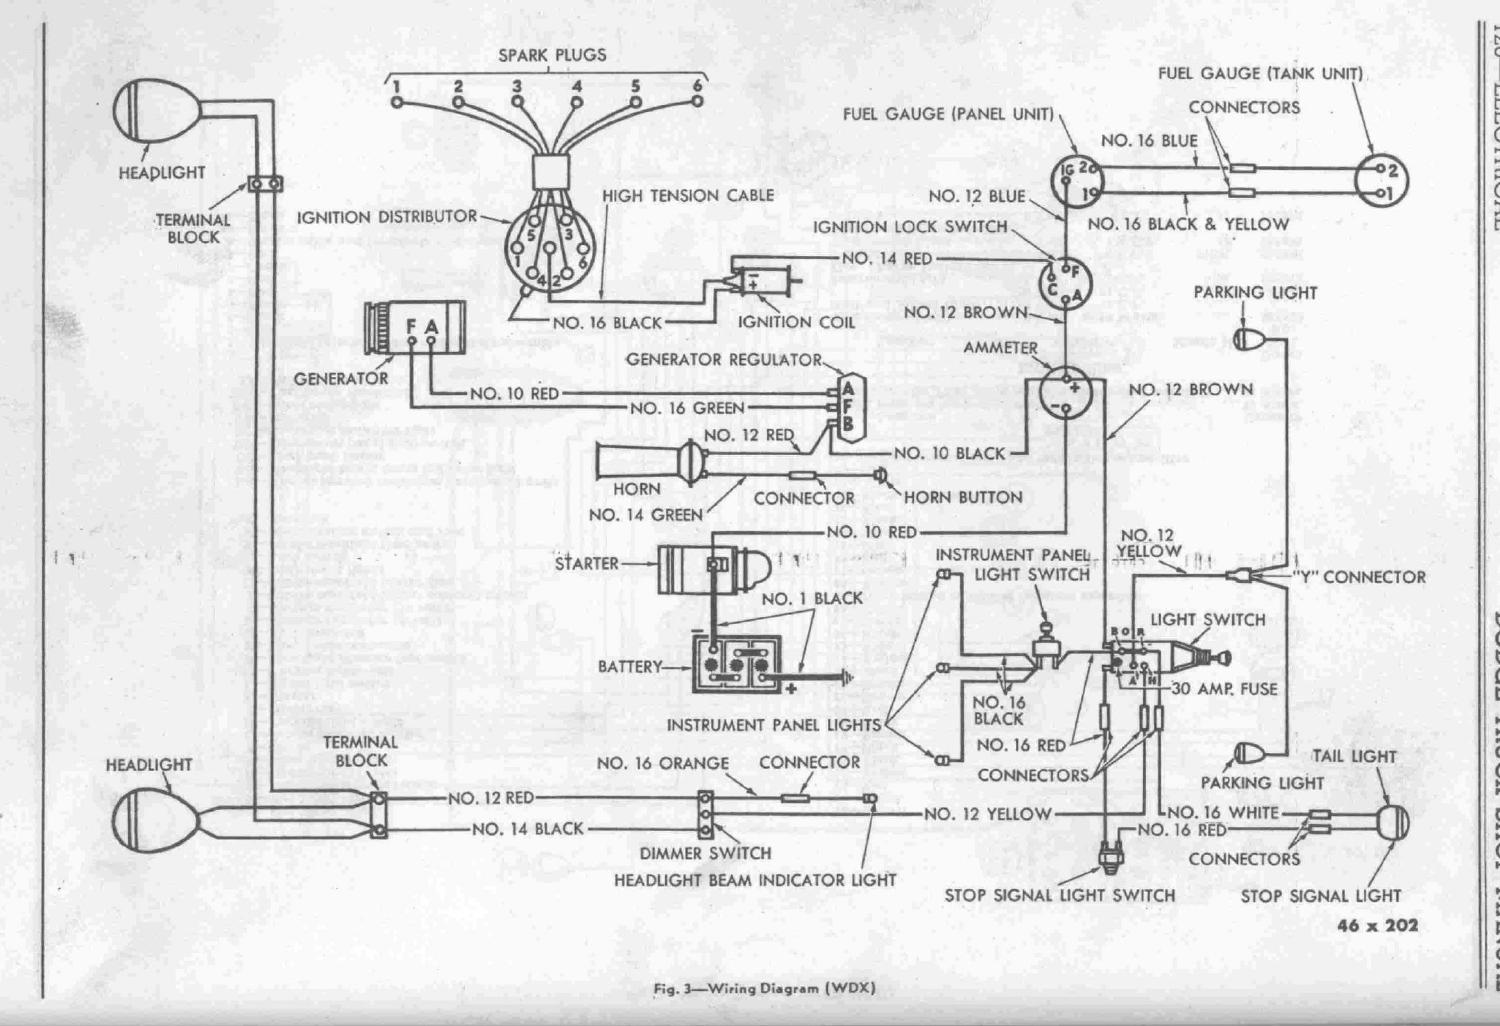 1984 dodge d150 wiring diagram 1984 image wiring dodge d150 wiring harness dodge image wiring diagram on 1984 dodge d150 wiring diagram